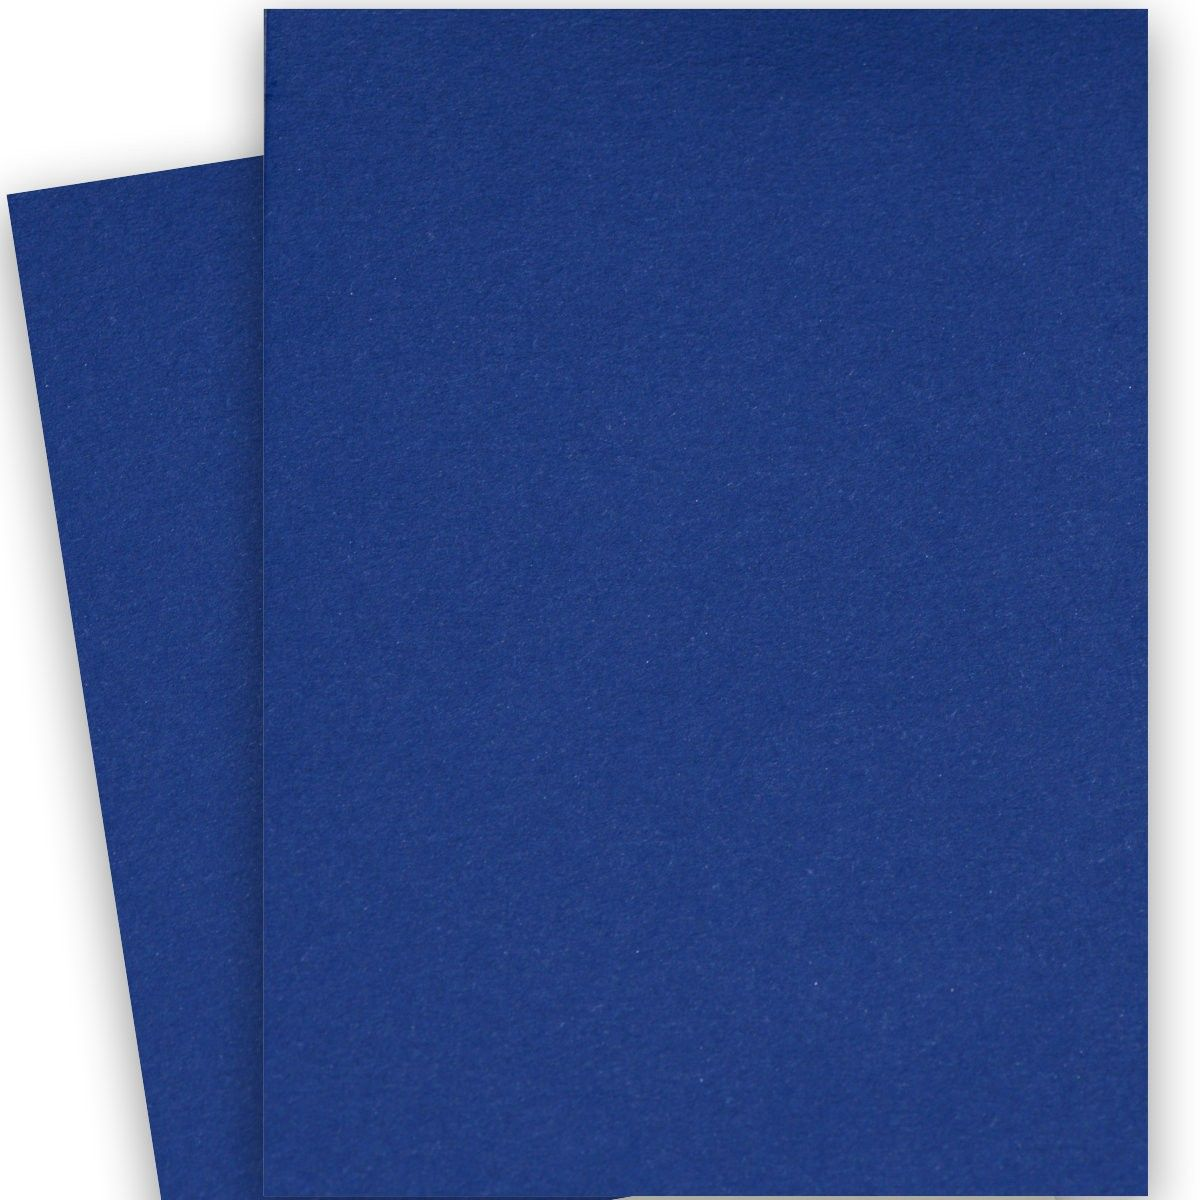 Basis Colors 26 X 40 Cardstock Paper Blue 80lb Cover Card Stock Vat Dyeing Cover Paper